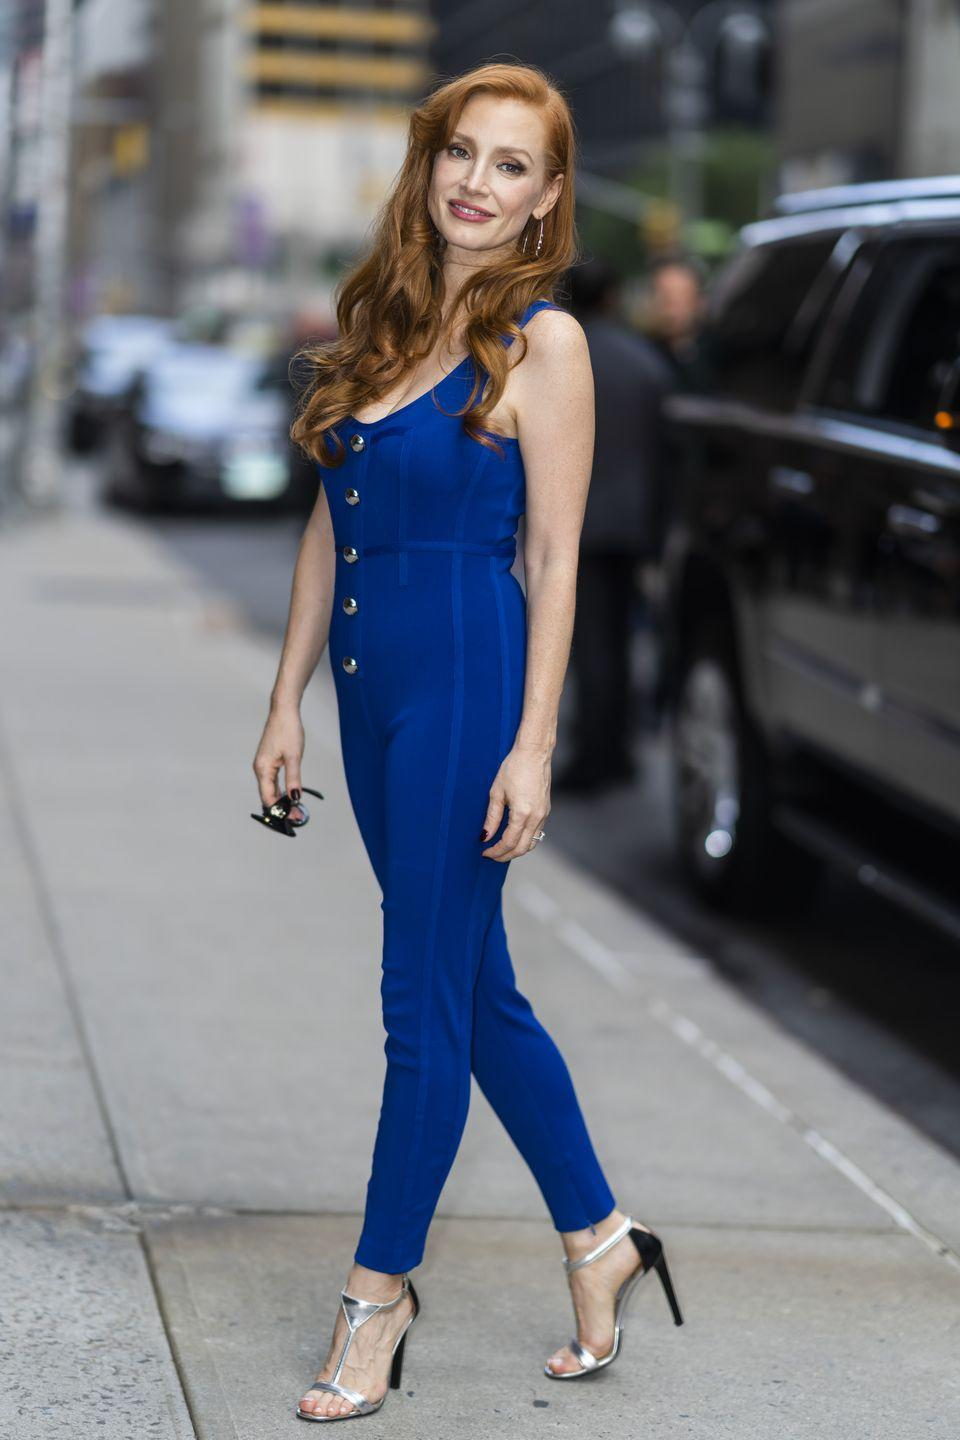 <p><strong>15 September</strong></p><p>The previous day, the actress was seen arriving for an appearance on The Late Show with Stephen Colbert wearing an electric blue David Koma jumpsuit. </p>